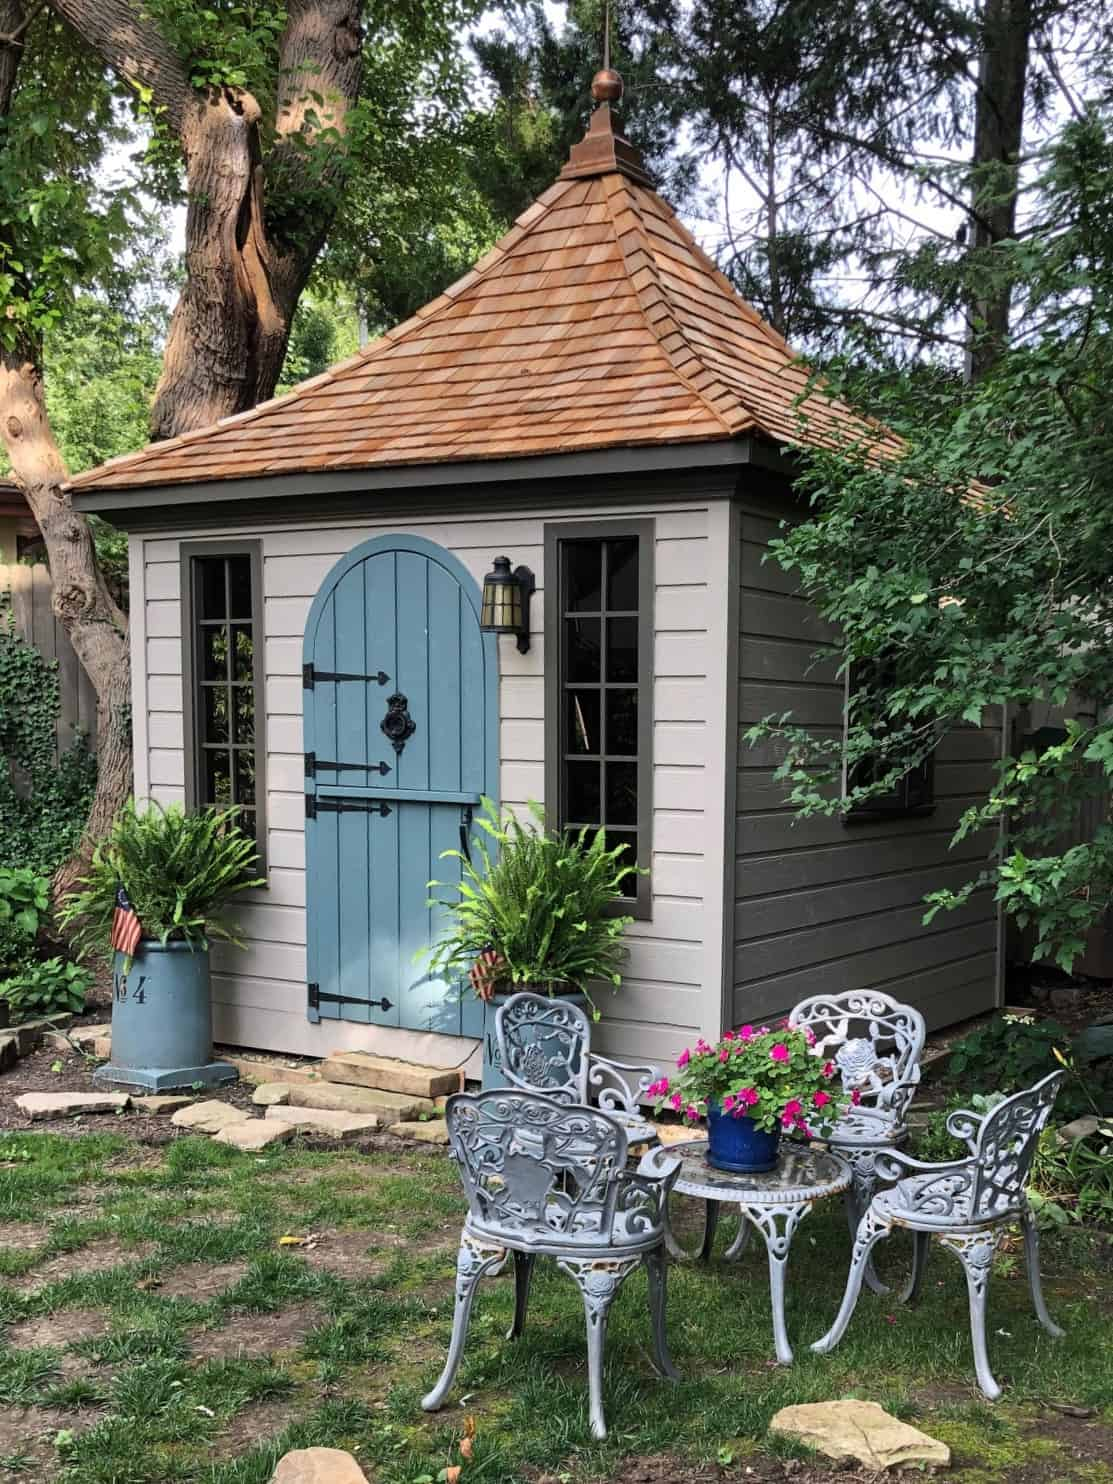 Backyard Shed - Summerwood Products